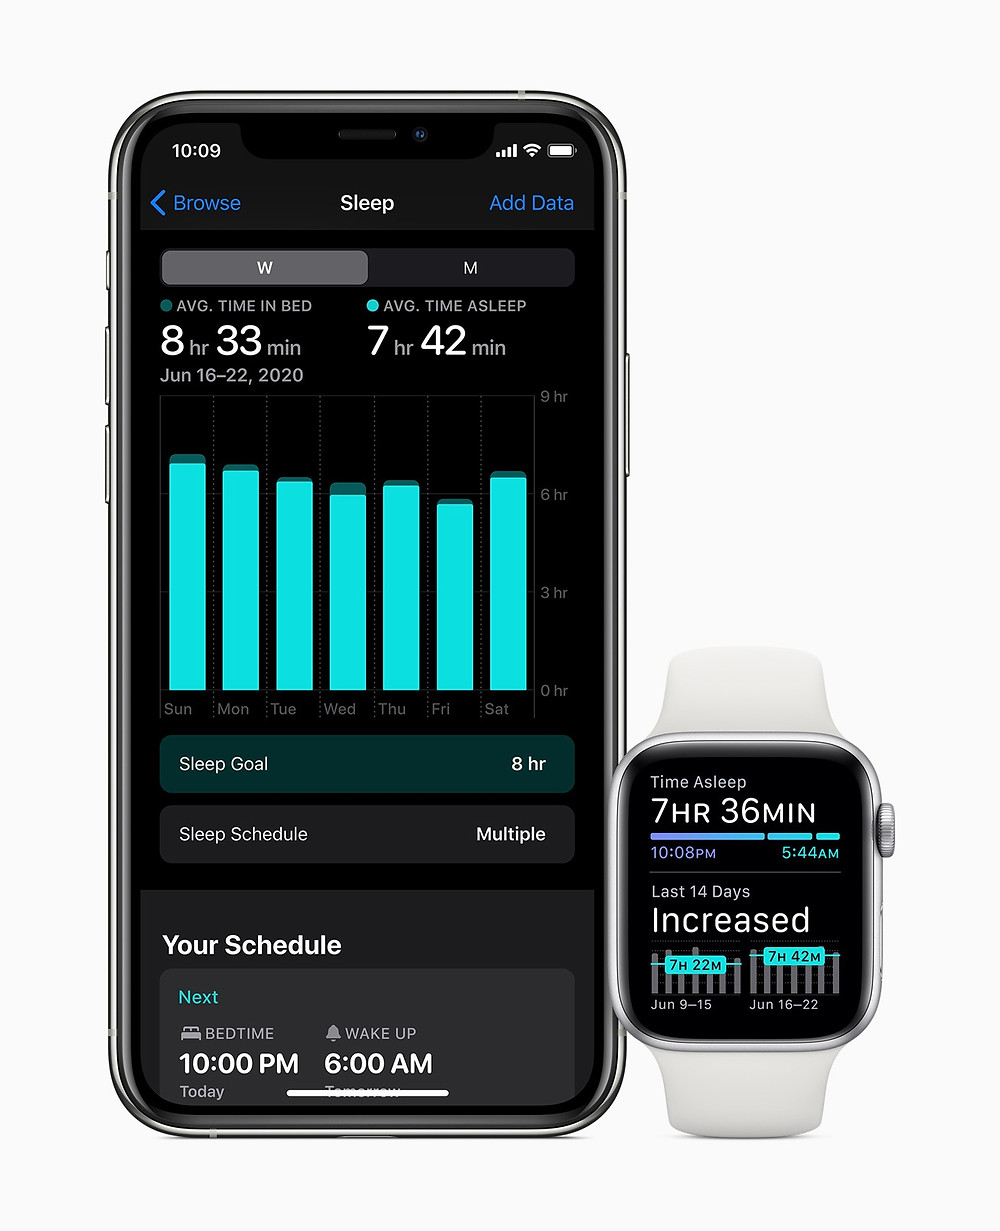 Sleep tracking comes to Apple Watch with watchOS 7 in the fall.